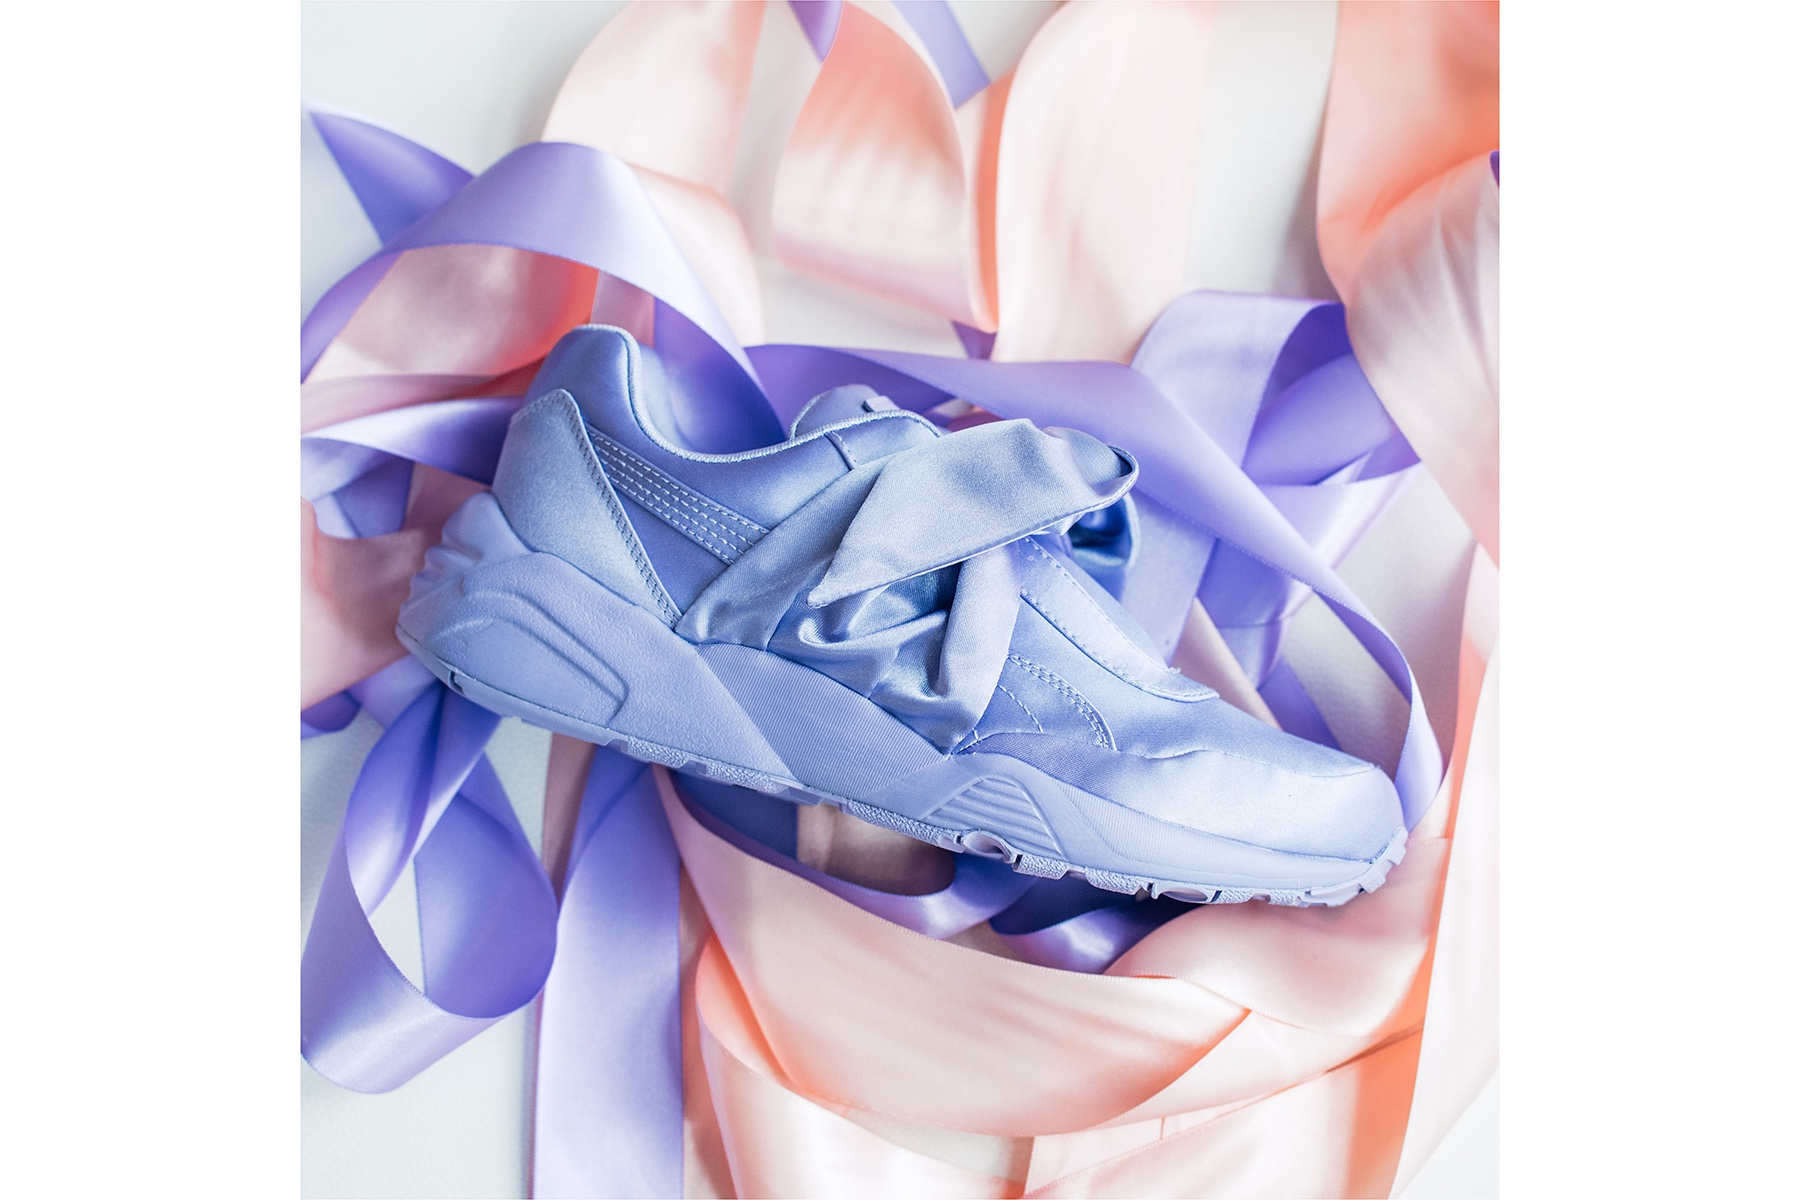 http---bae.hypebeast.com-files-2017-04-rihanna-fenty-puma-2017-spring-summer-bow-footwear-collection-1